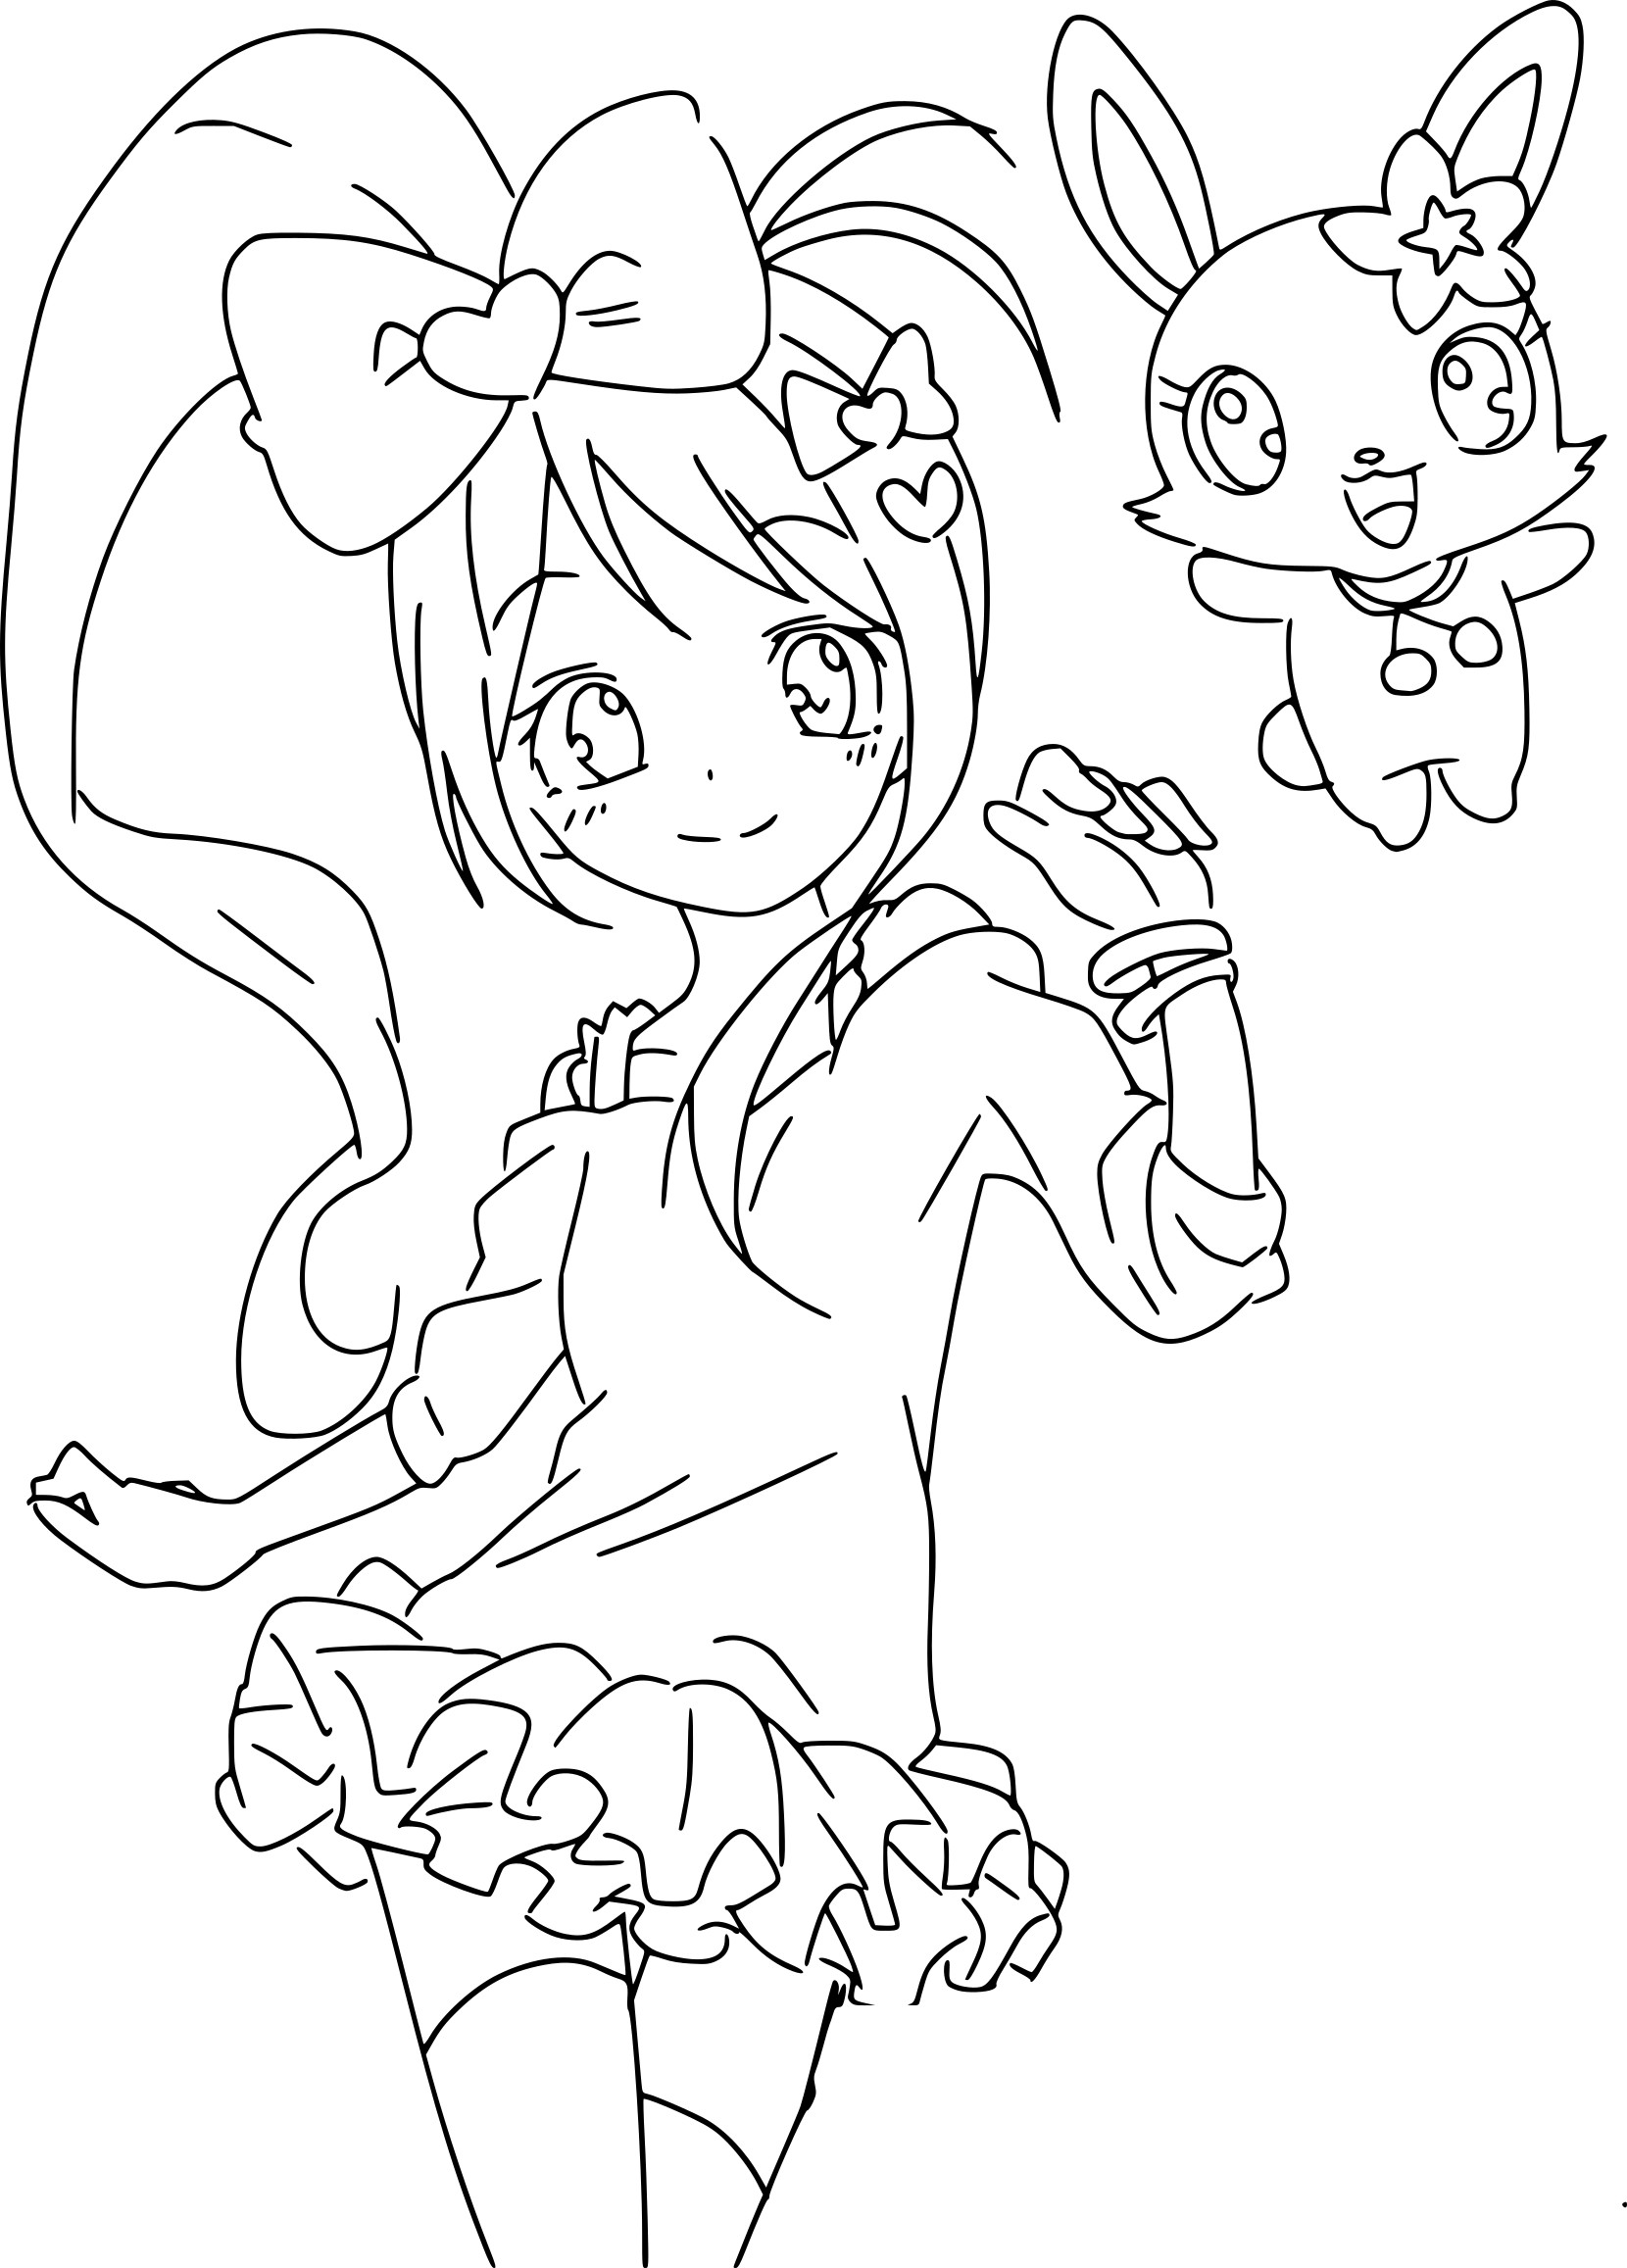 coloriage jewelpet fille manga imprimer sur coloriages info. Black Bedroom Furniture Sets. Home Design Ideas